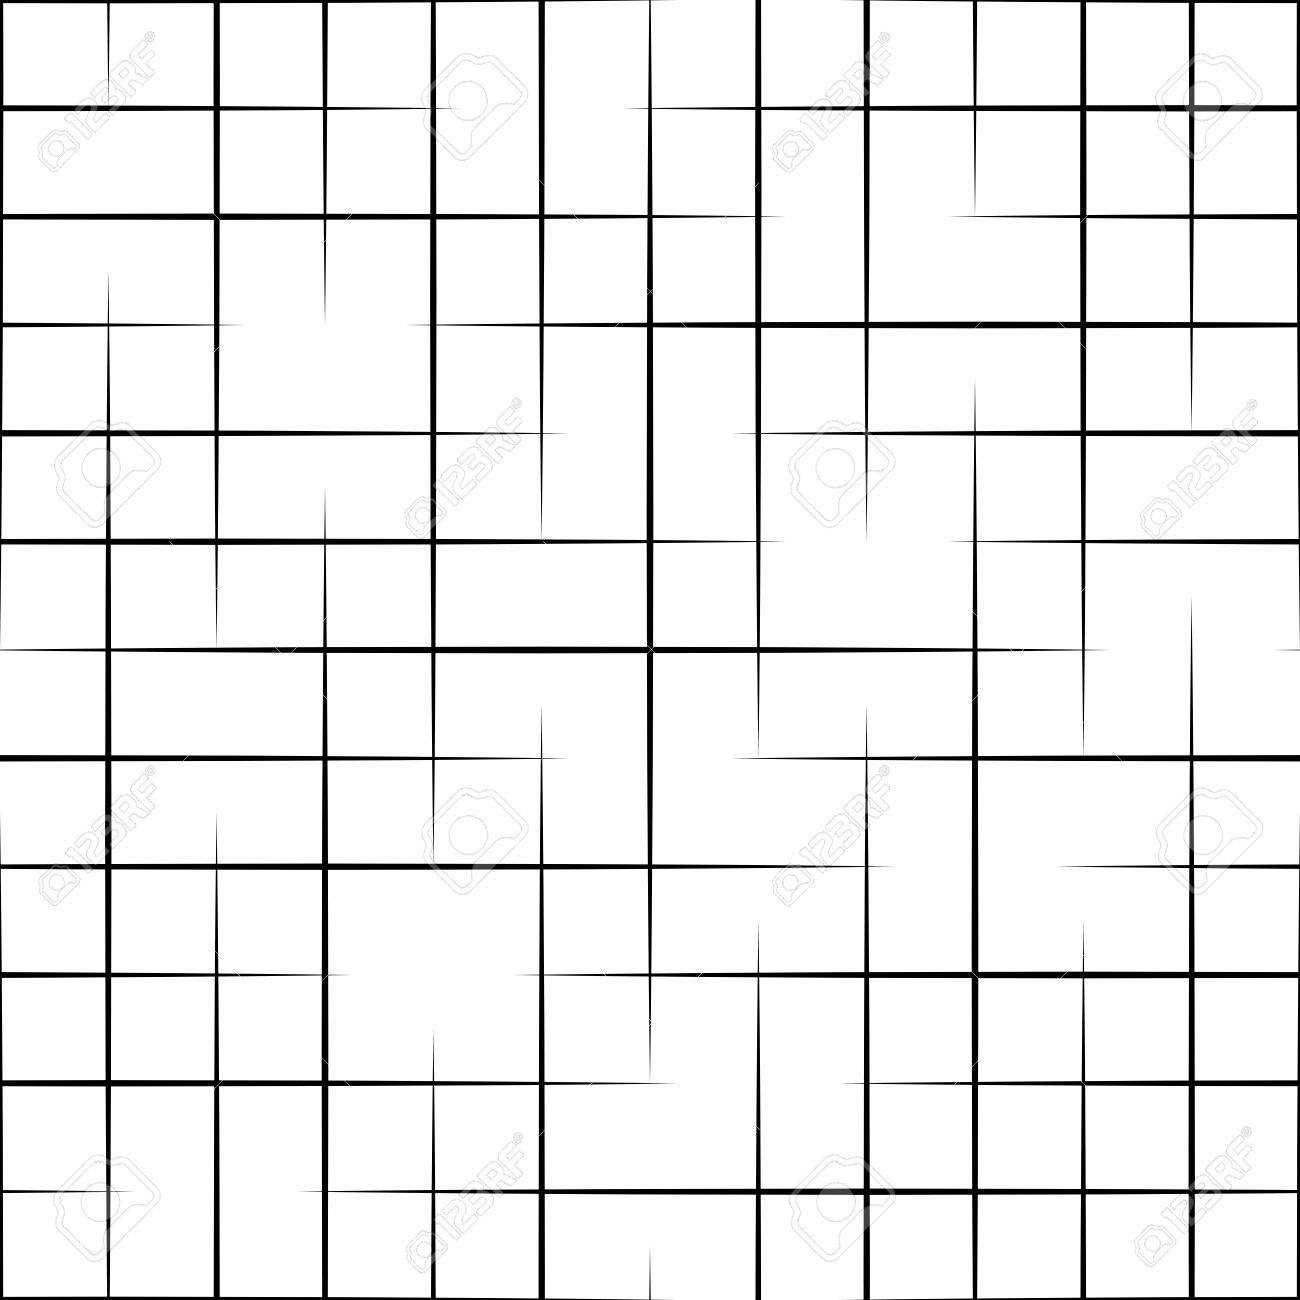 Seamless Grid Pattern. Vector Black and White Background. Regular Texture - 57875258